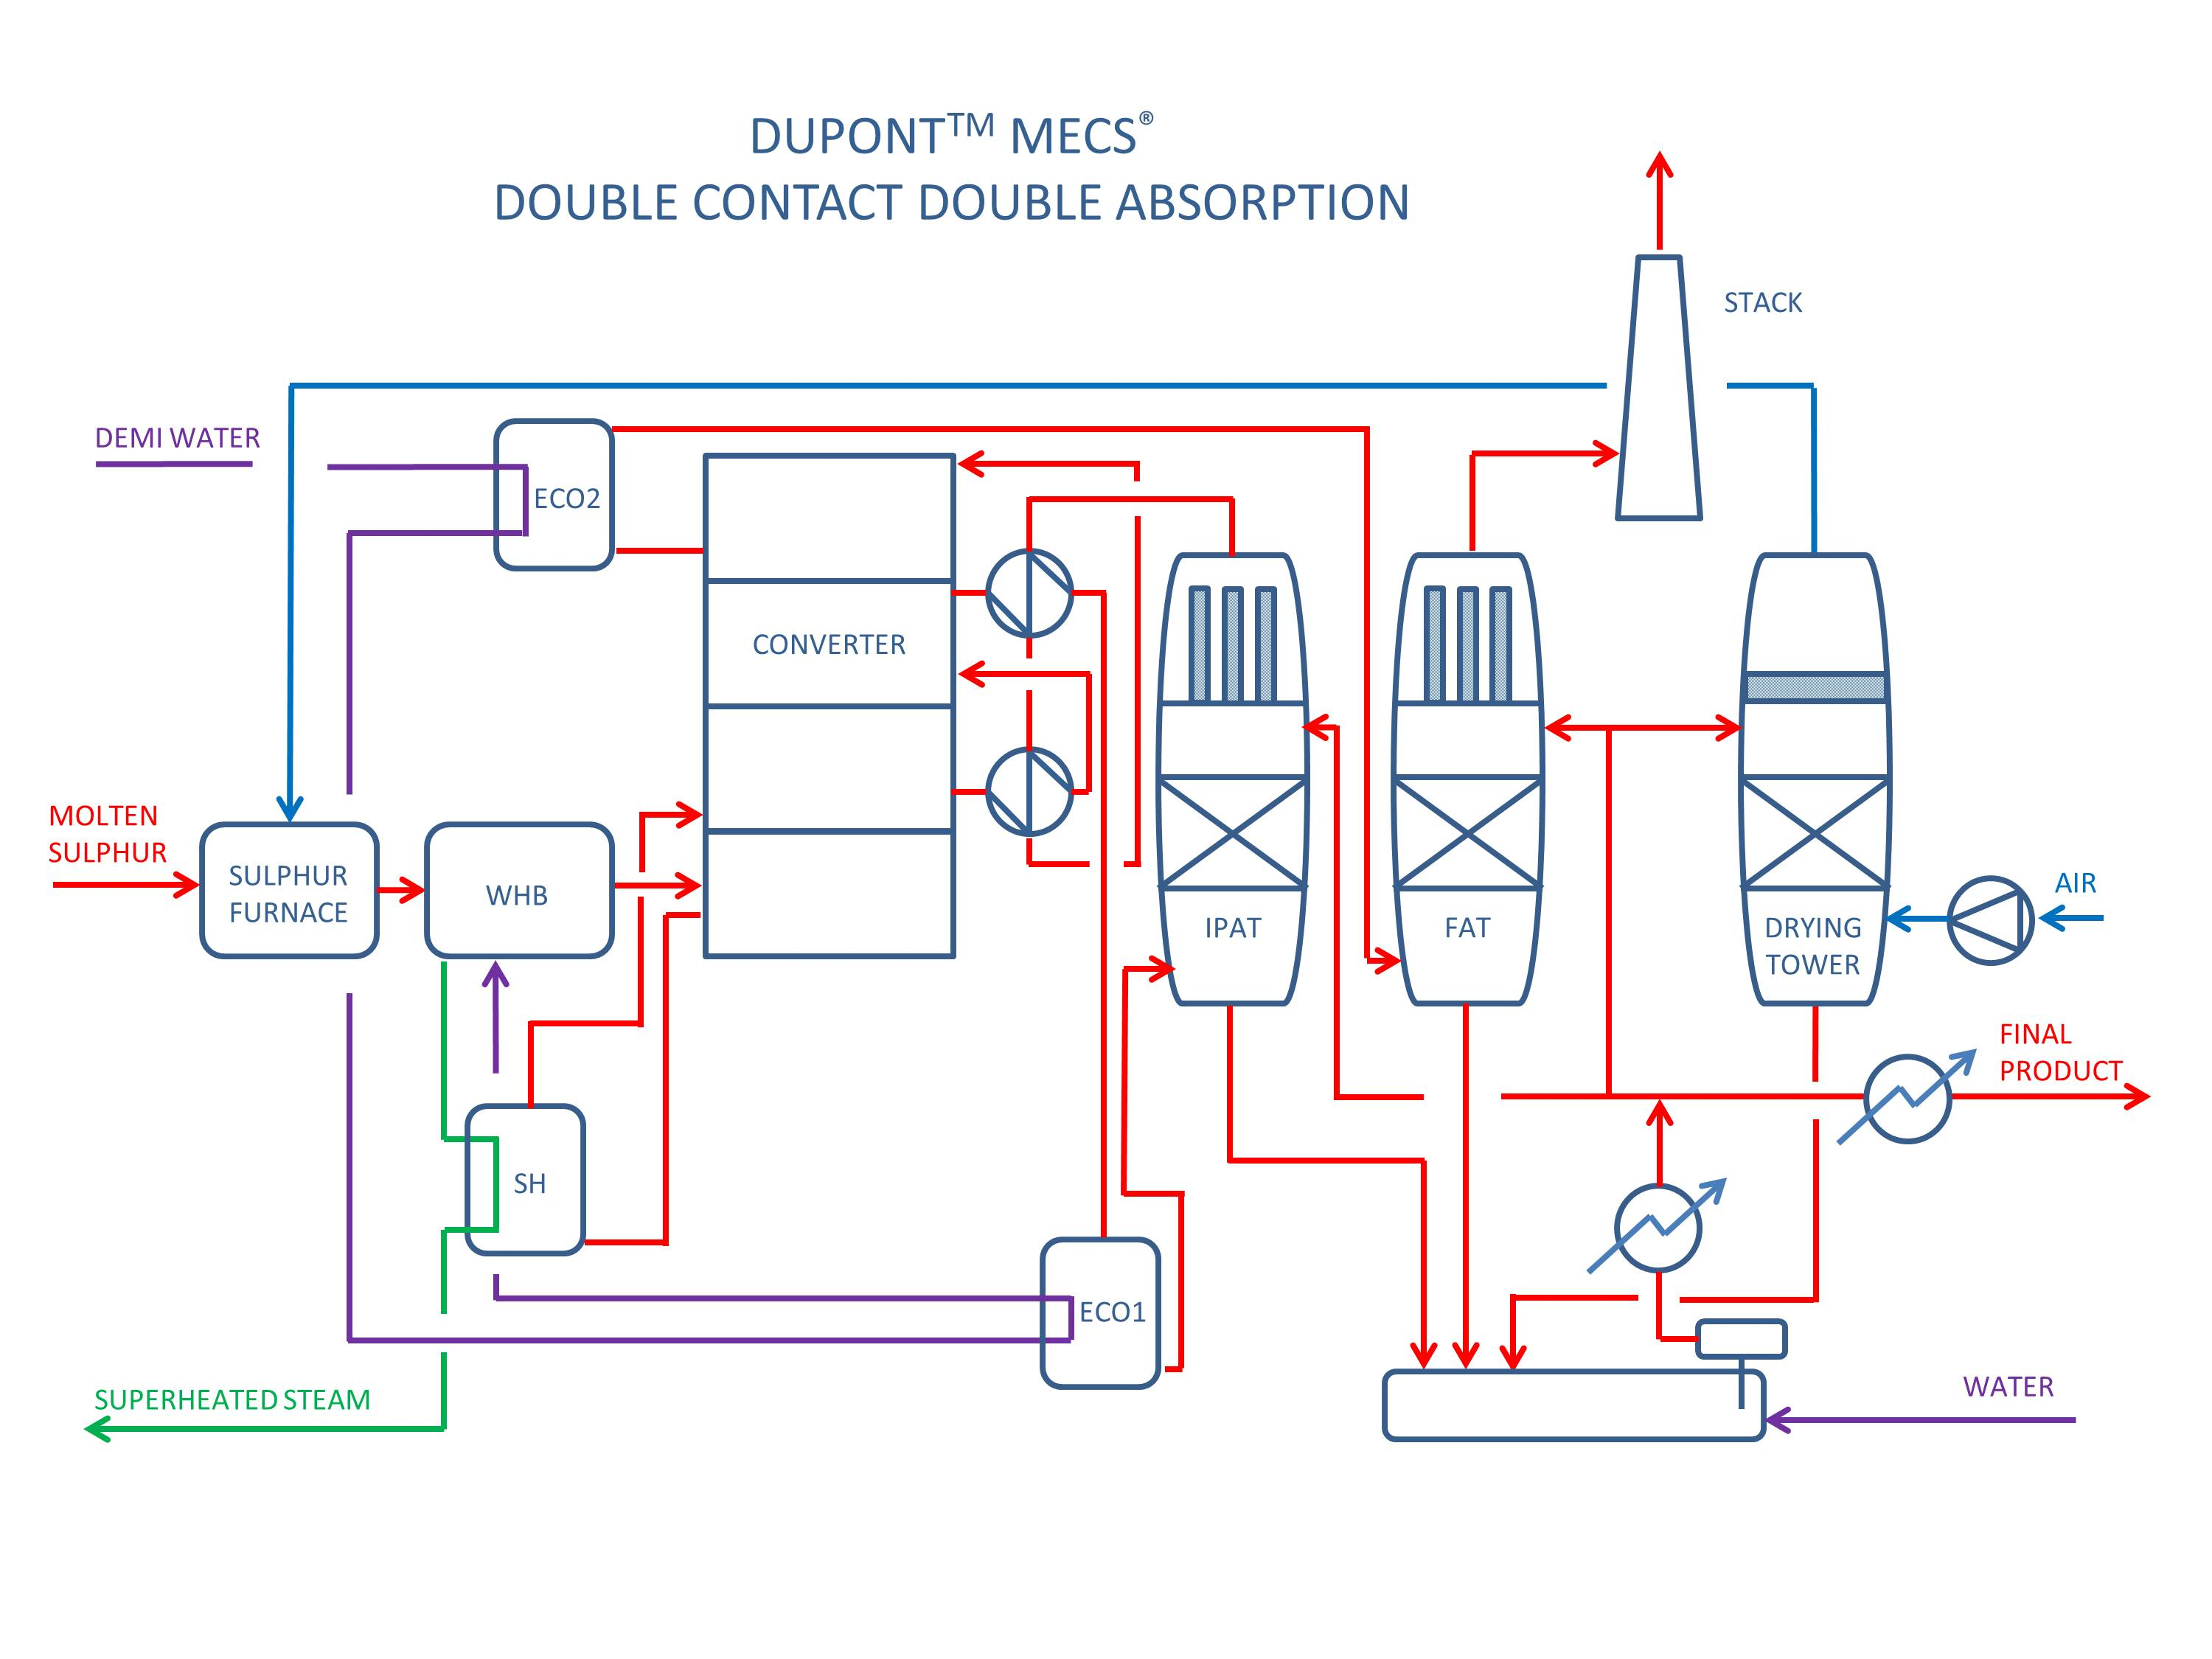 Desmet Ballestra Sulphuric Acid Production Plants Process Flow Diagram Oil And Gas Higher Conversion Factor Typically 998 Thus Granting So2 Emissions At Stack Within The Limit Of 280 Ppmv Without Need For A Tail Scrubber